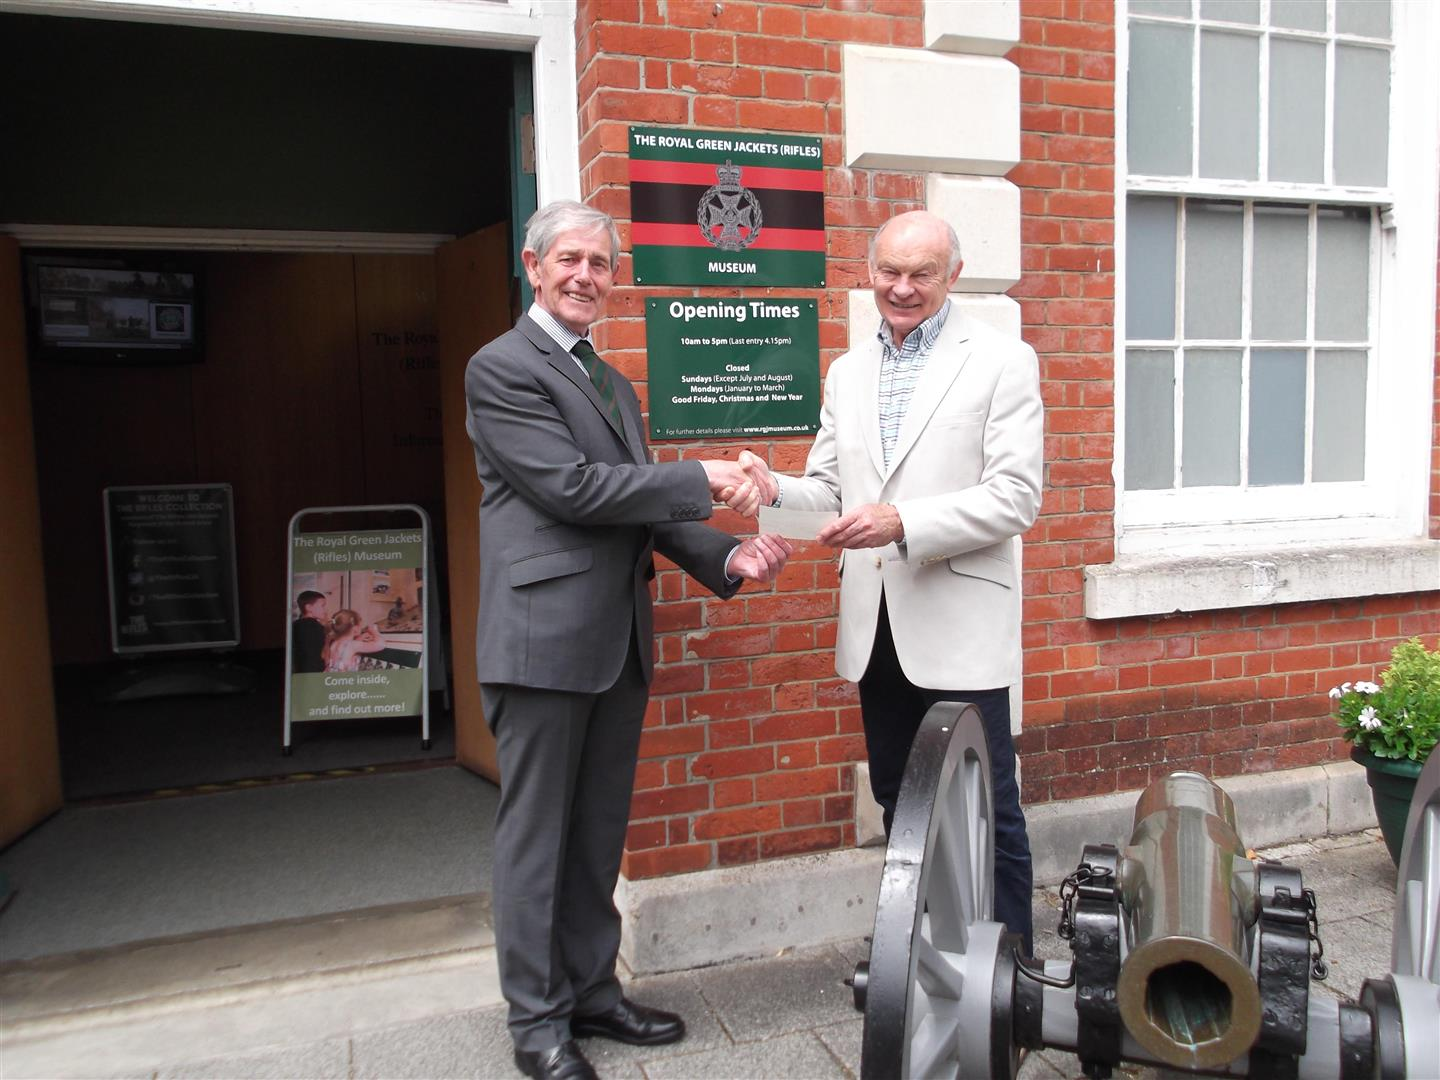 Lodge donates £400 to Royal Green Jackets (Rifles) Museum